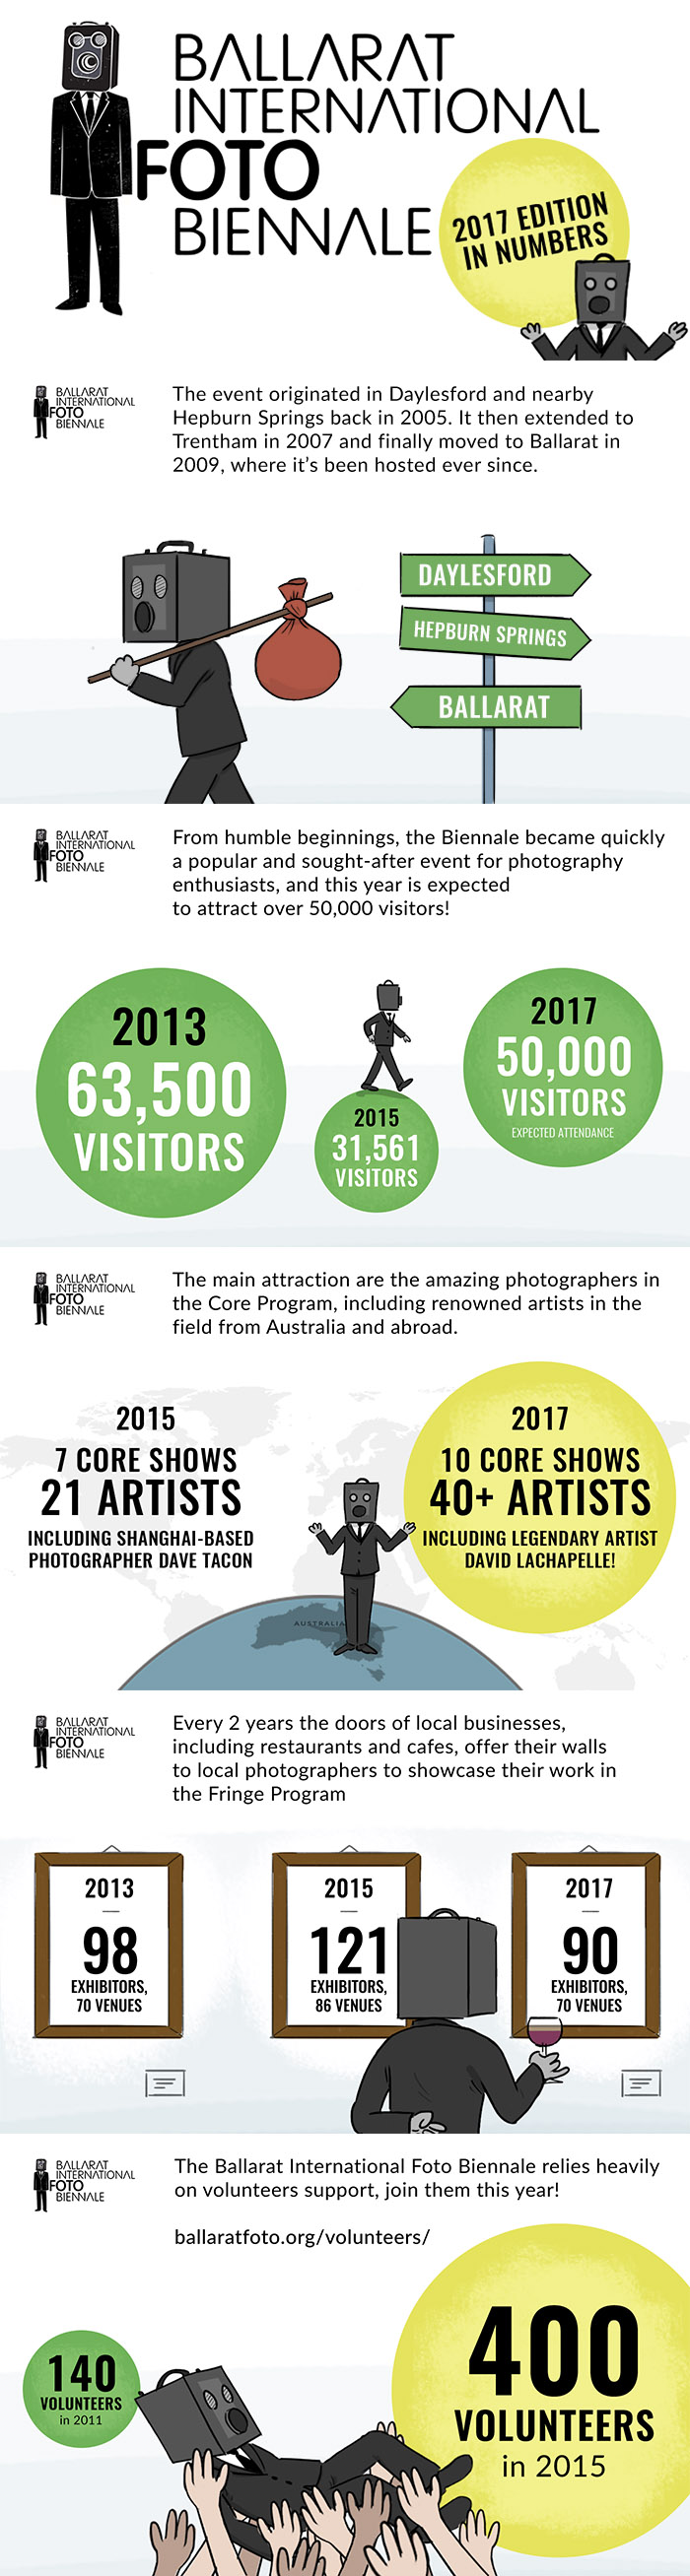 Ballarat International Foto Biennale 2017 - Hstudios Infographic